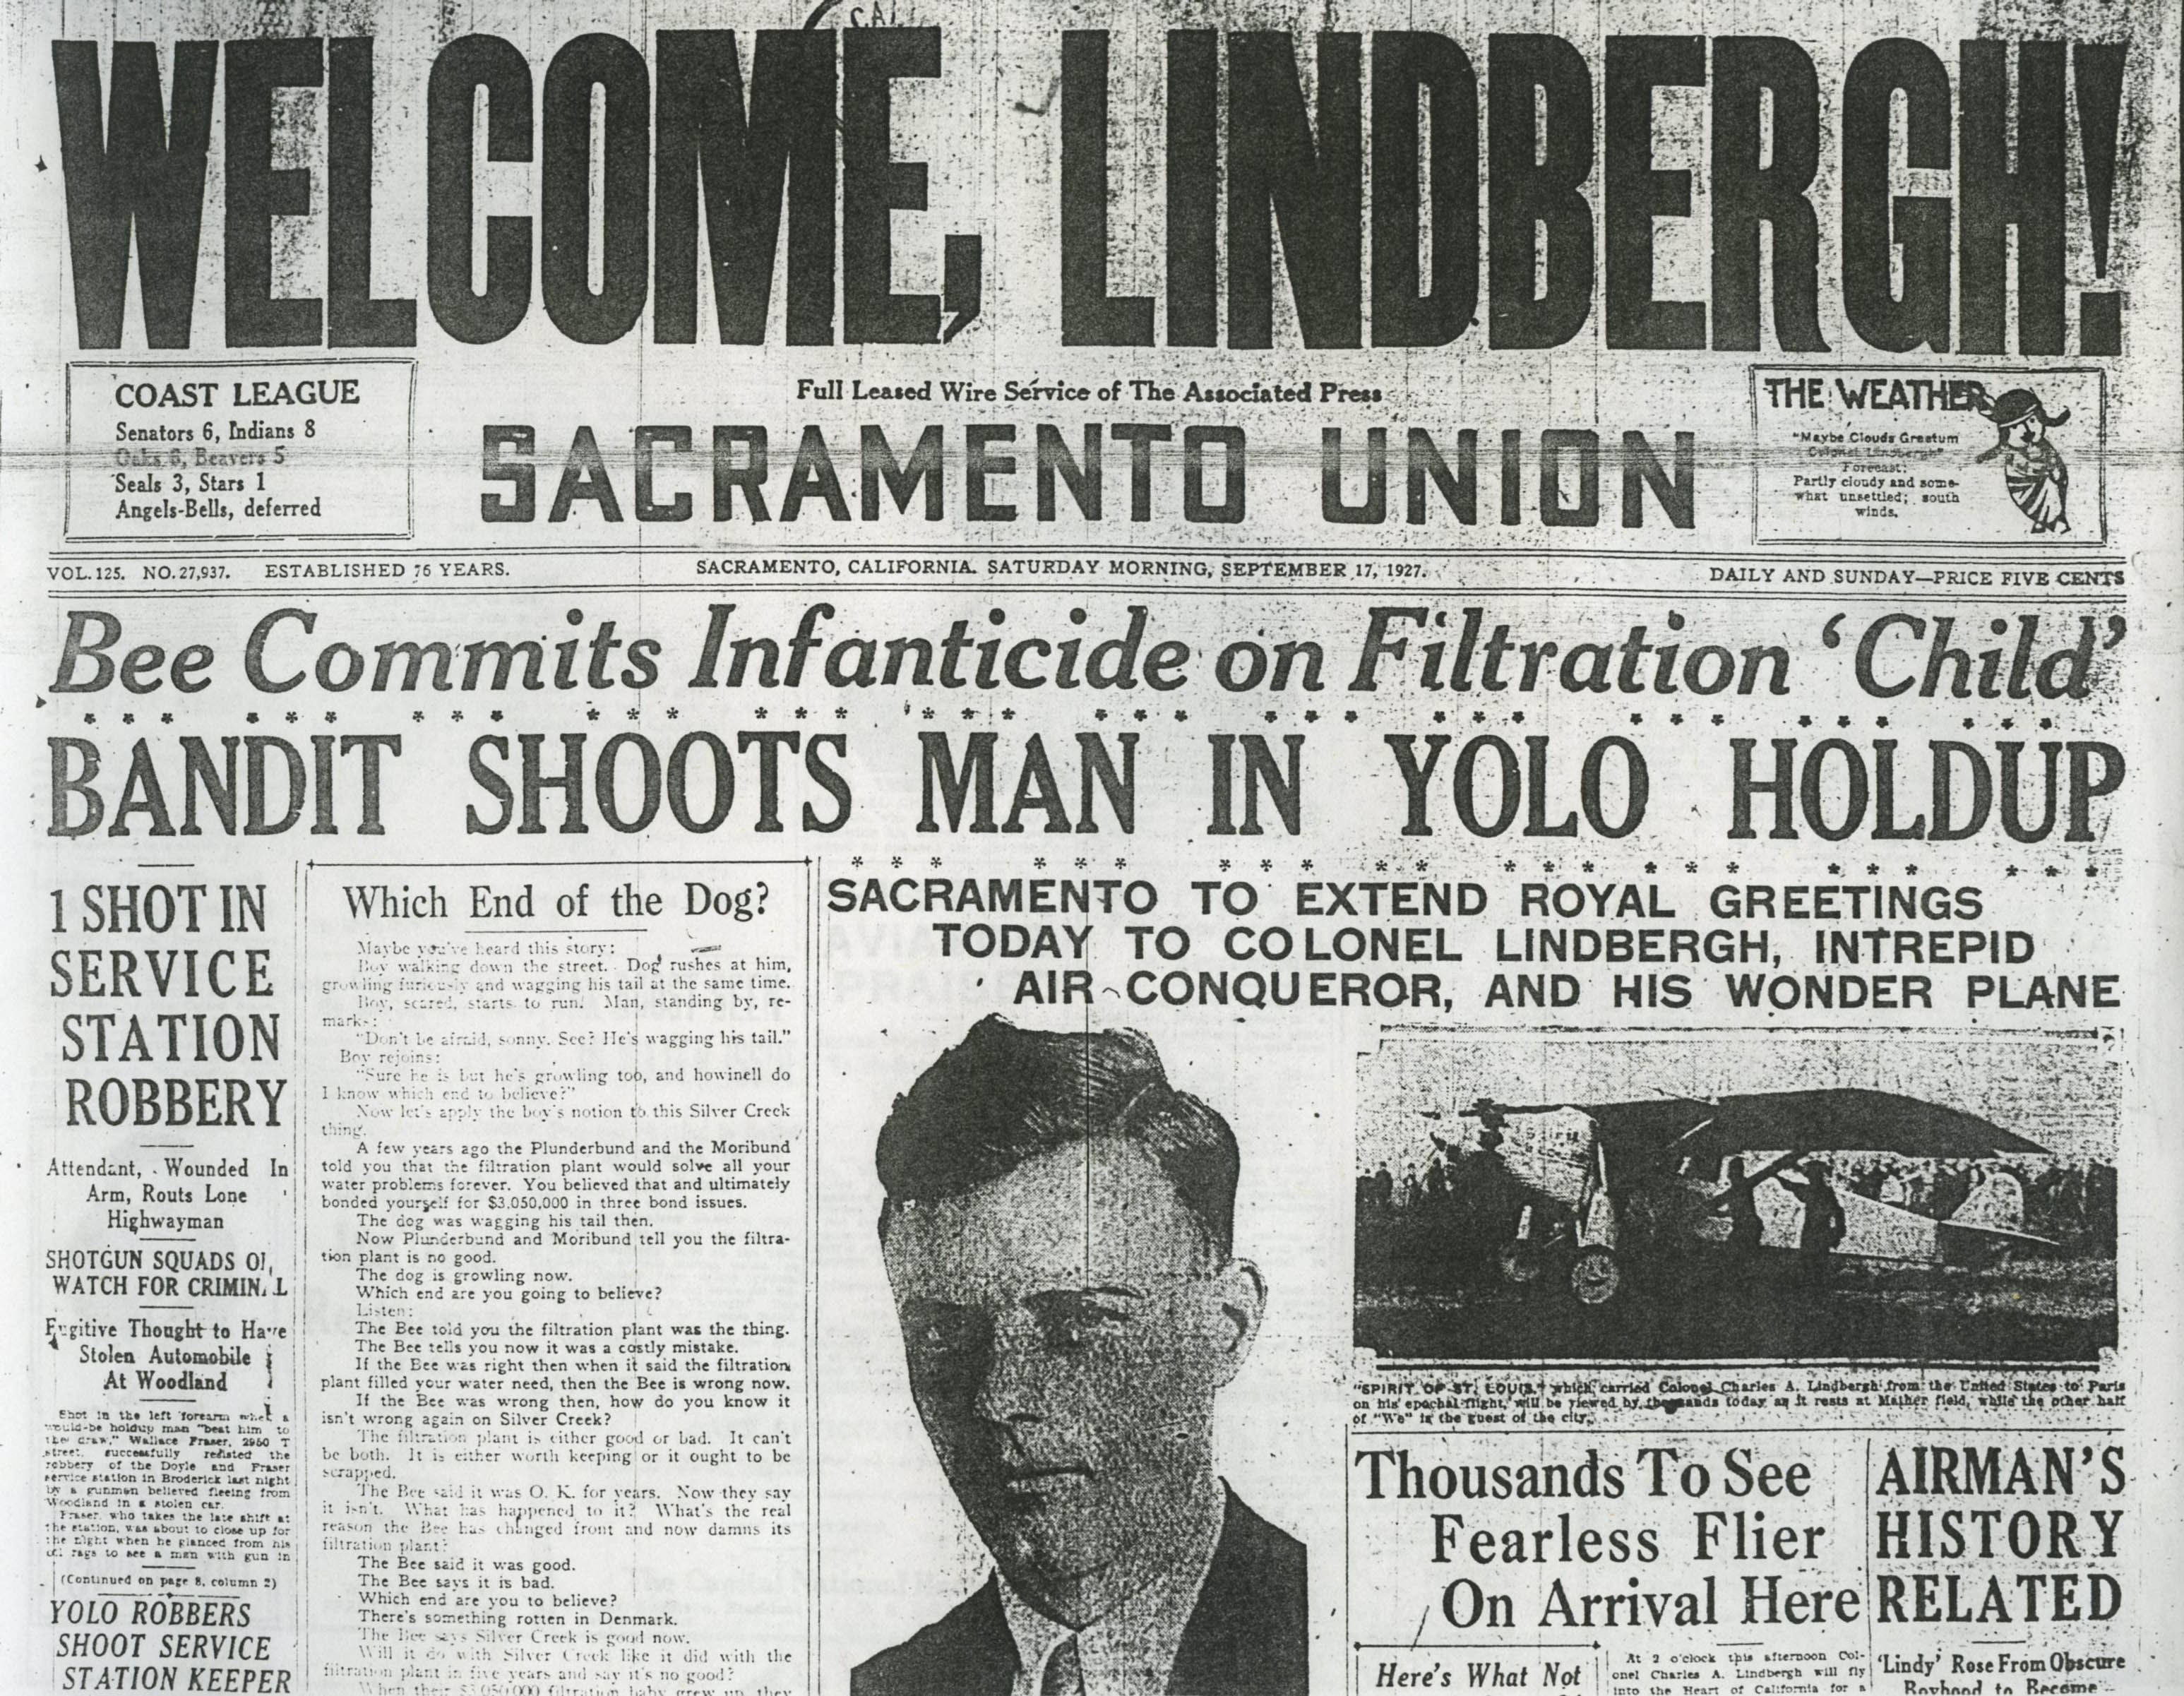 Welcome, Lindbergh! headline by the Sacramento Union on September 17, 1927.